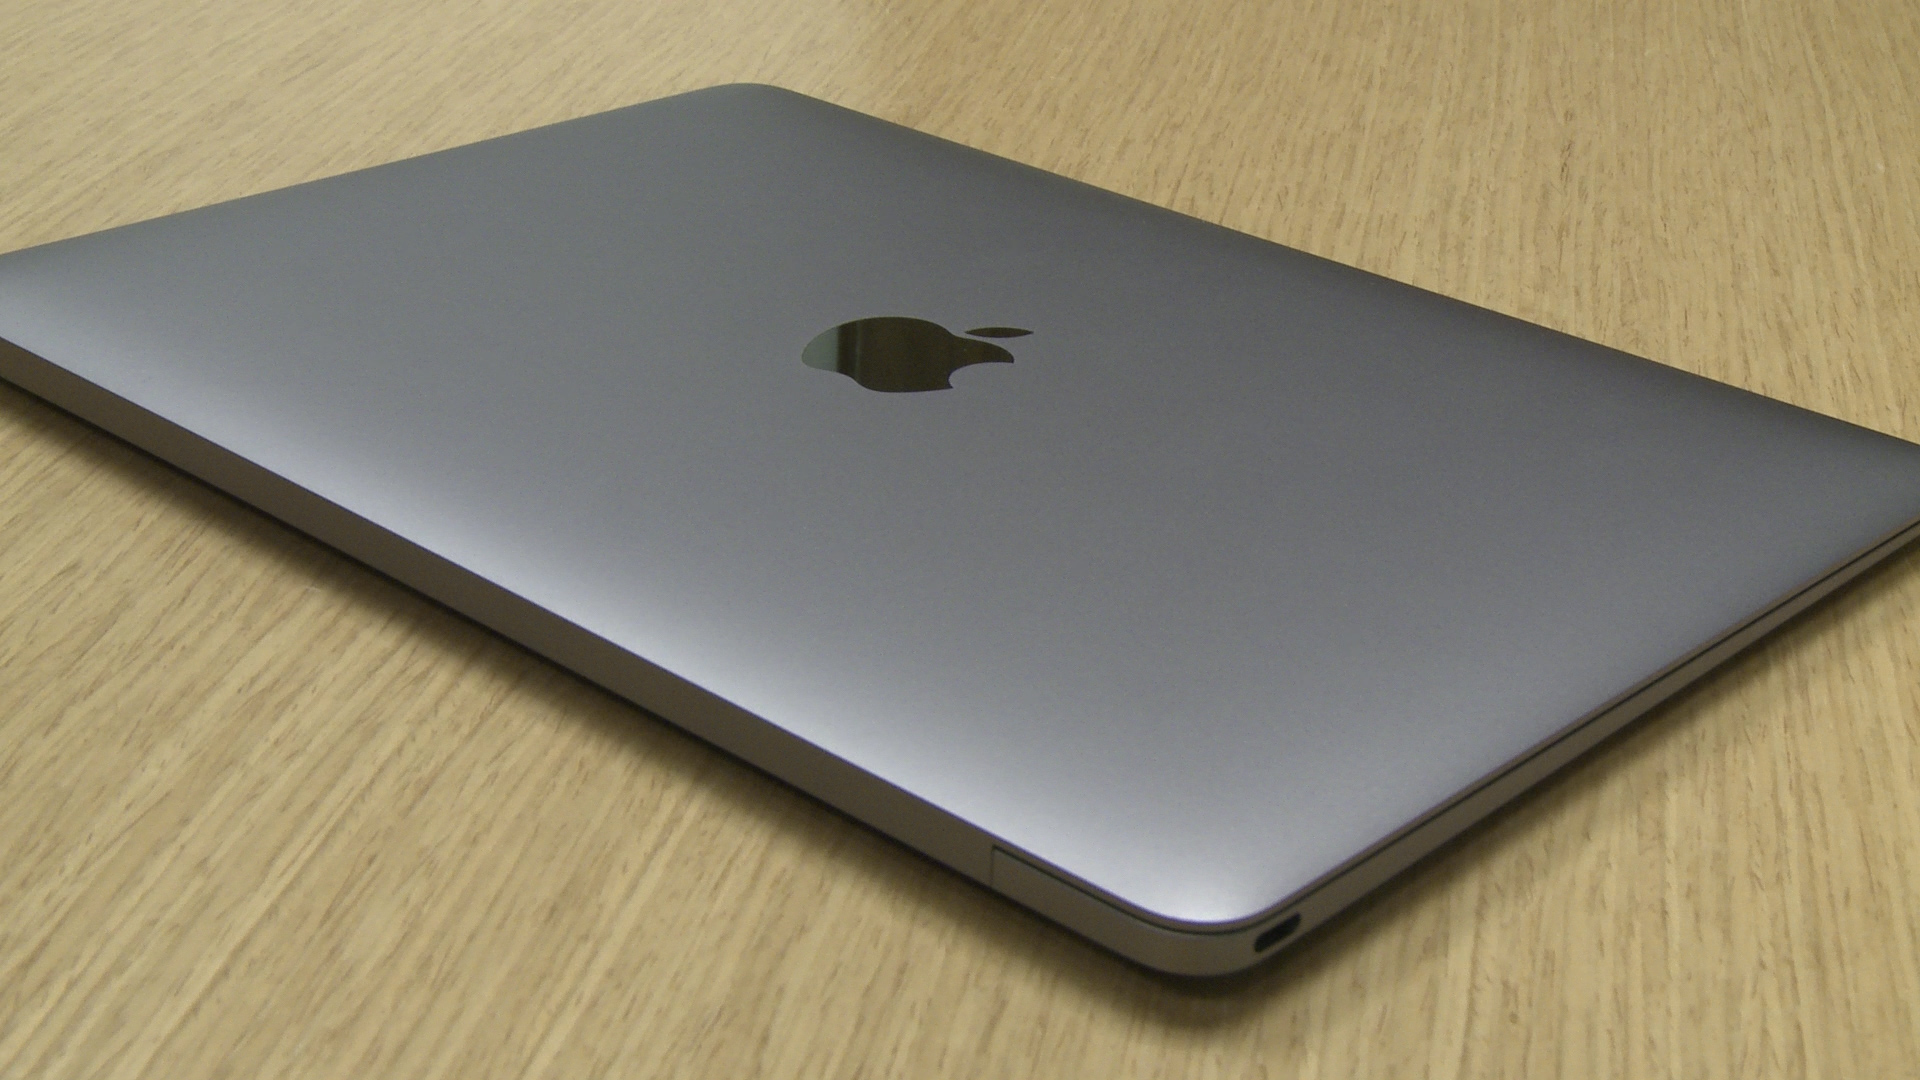 Ed Baig checks out Apple's new Macbook